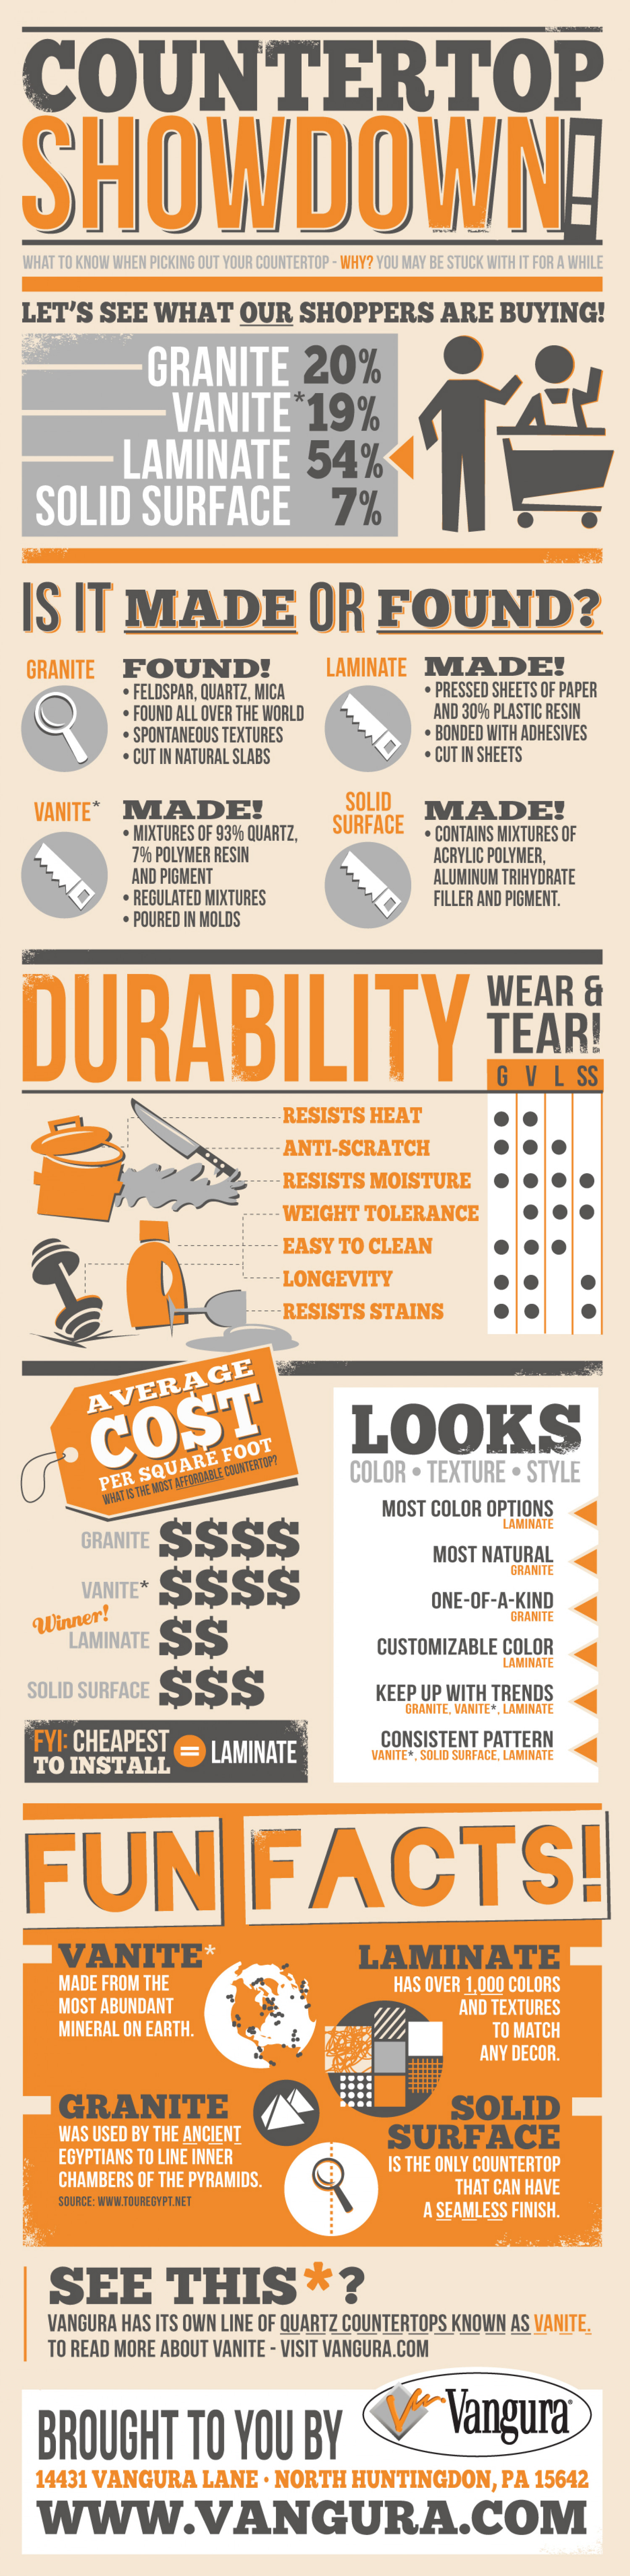 Kitchen Countertops Showdown Infographic